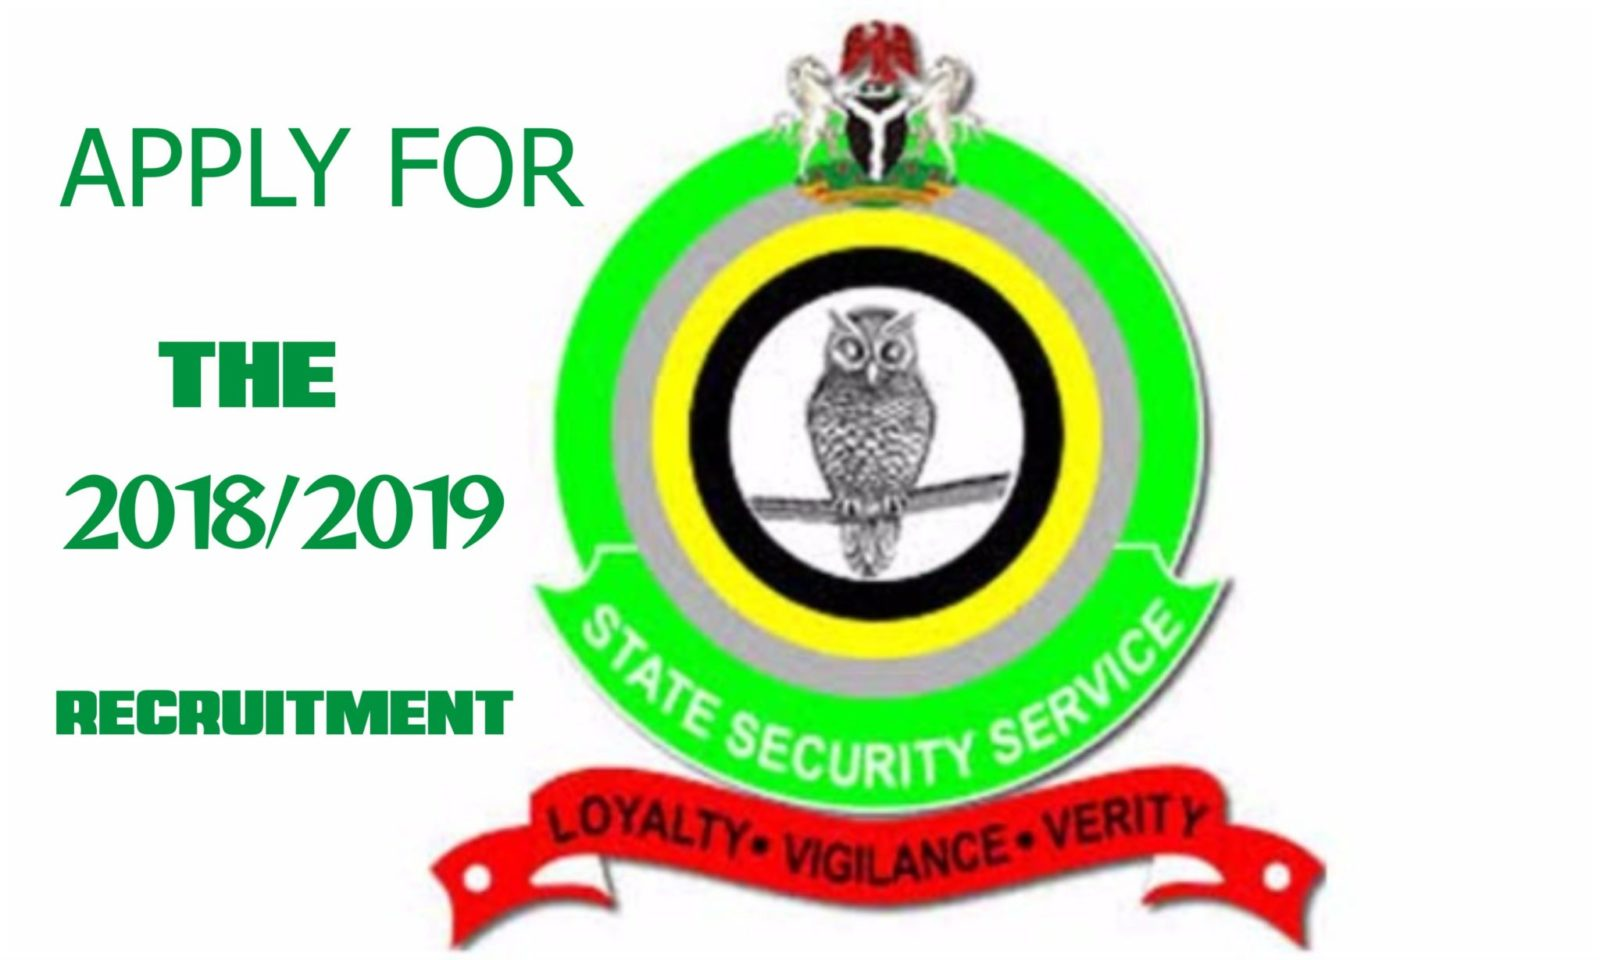 STATE SECURITY SERVICE RECRUITMENT 2019/2020- Application Letter Format- How to write the best application letter